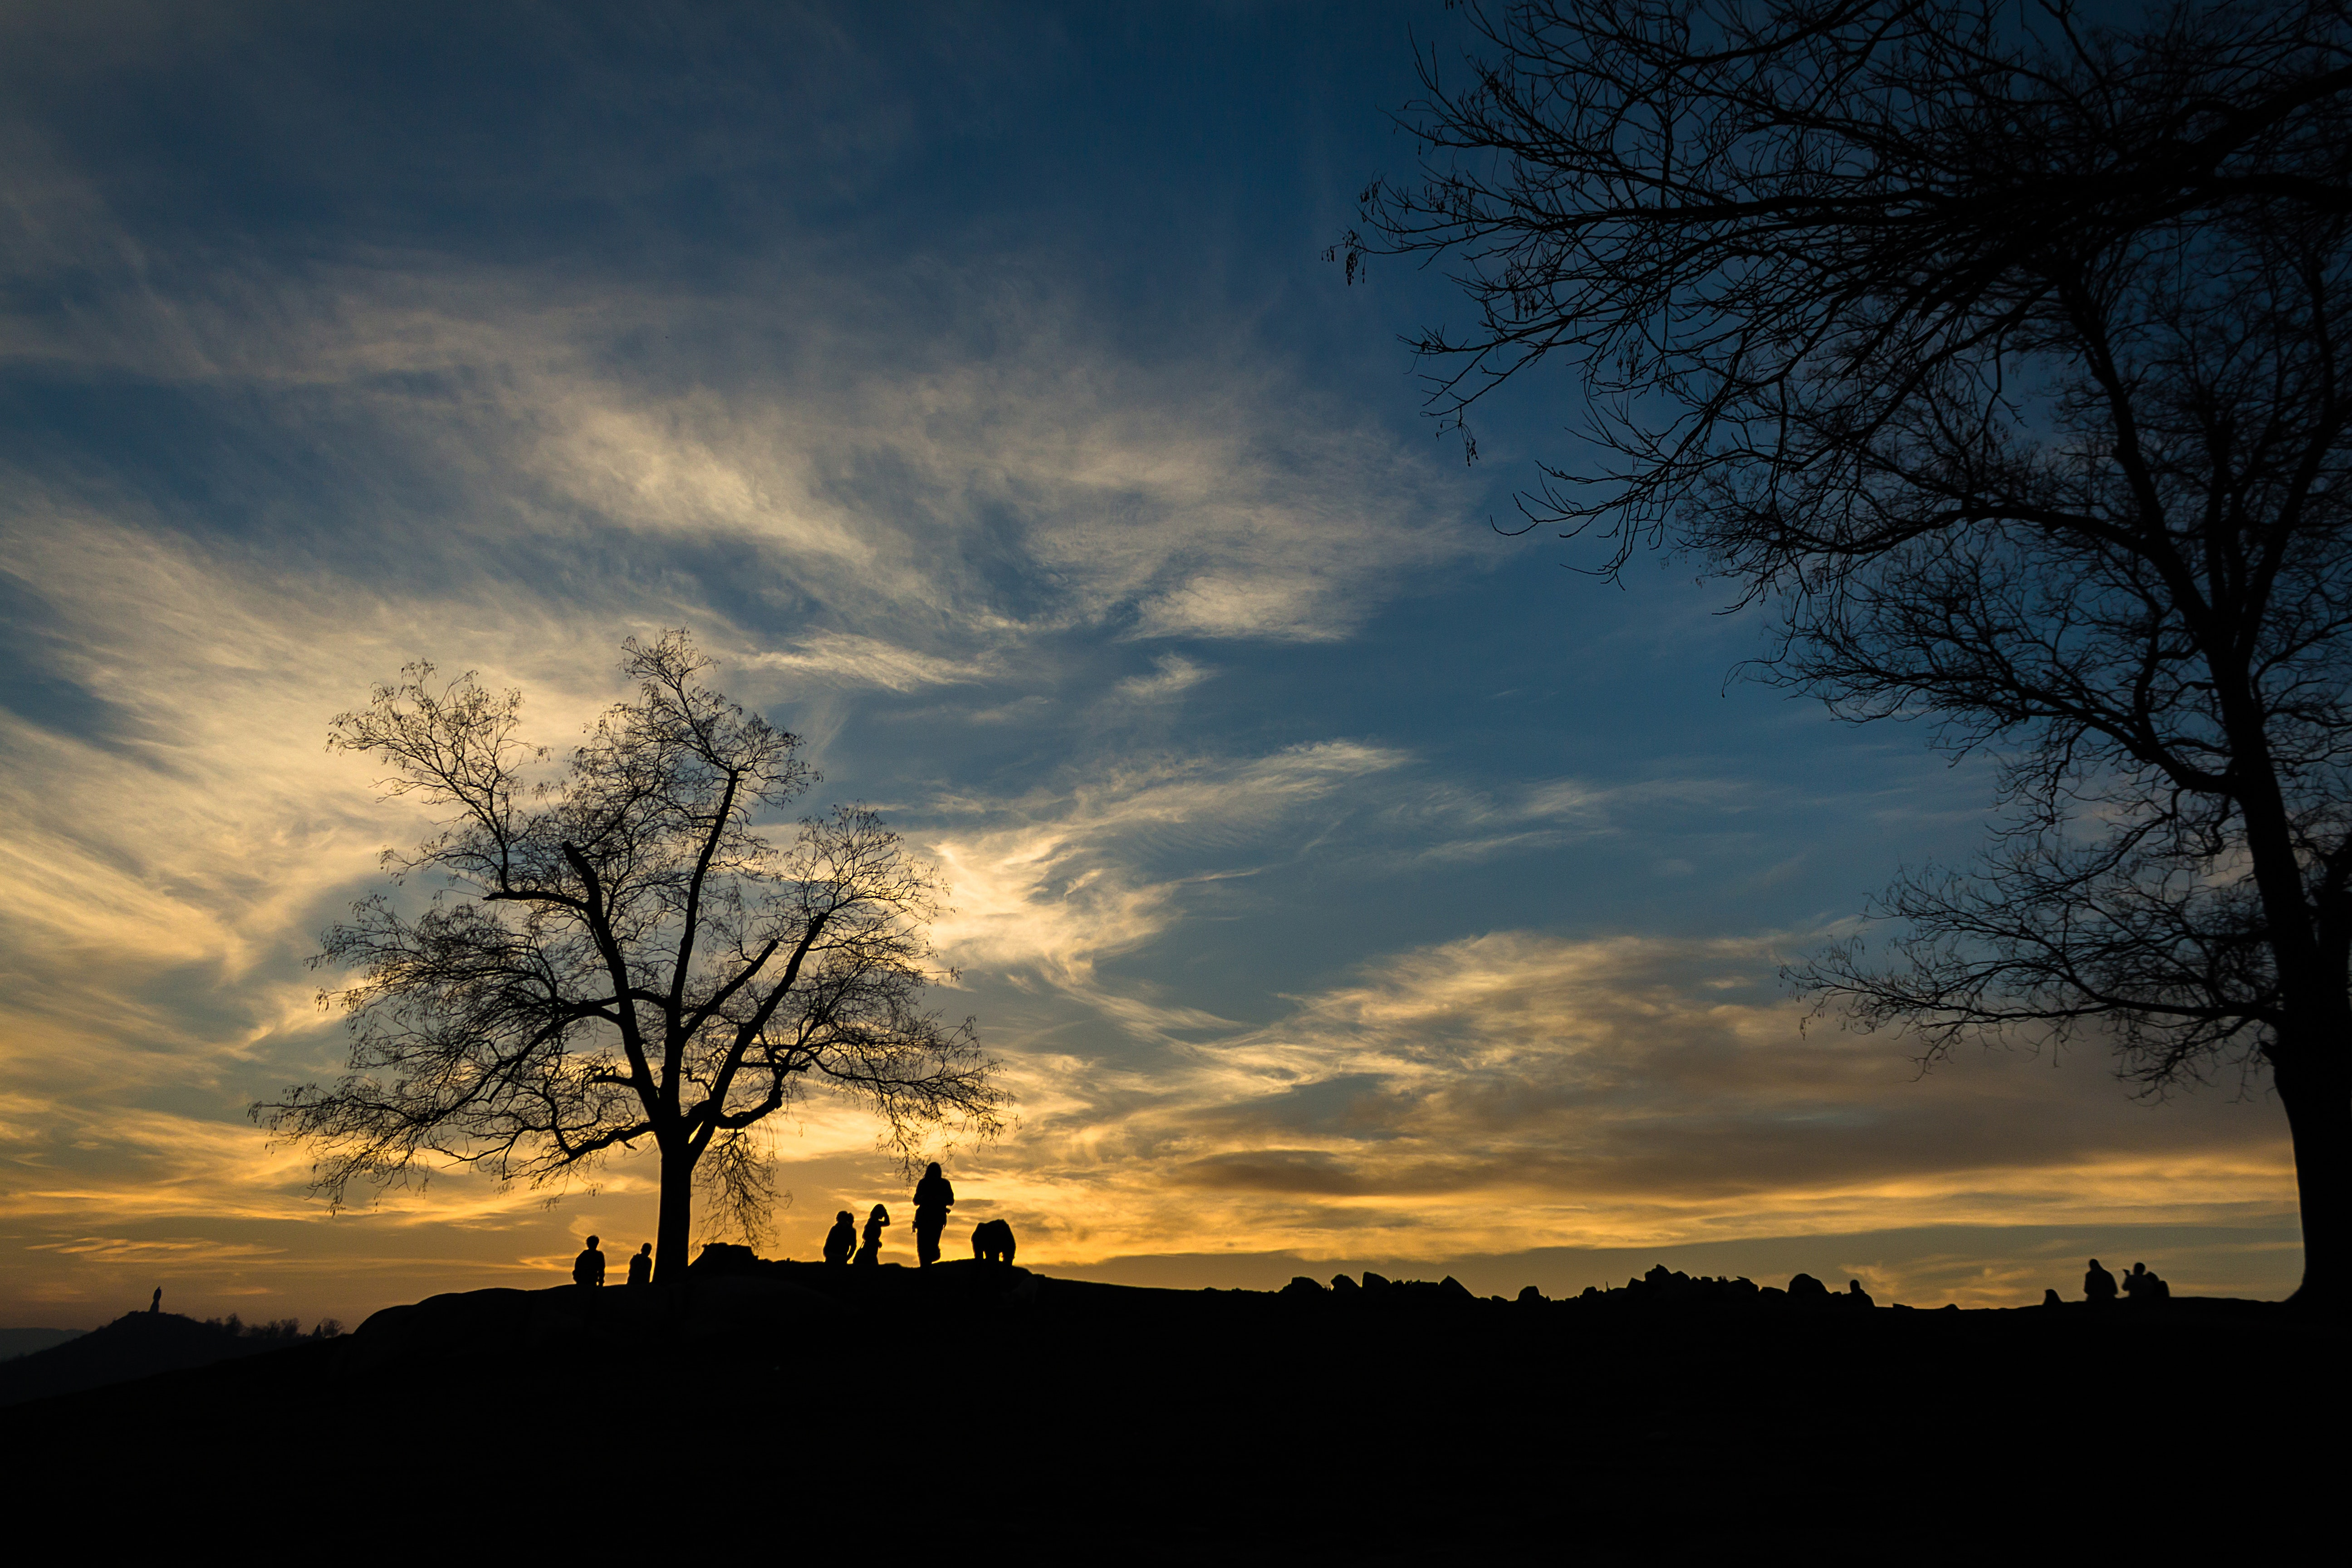 Silhouette of person near bare tree at sunset photo